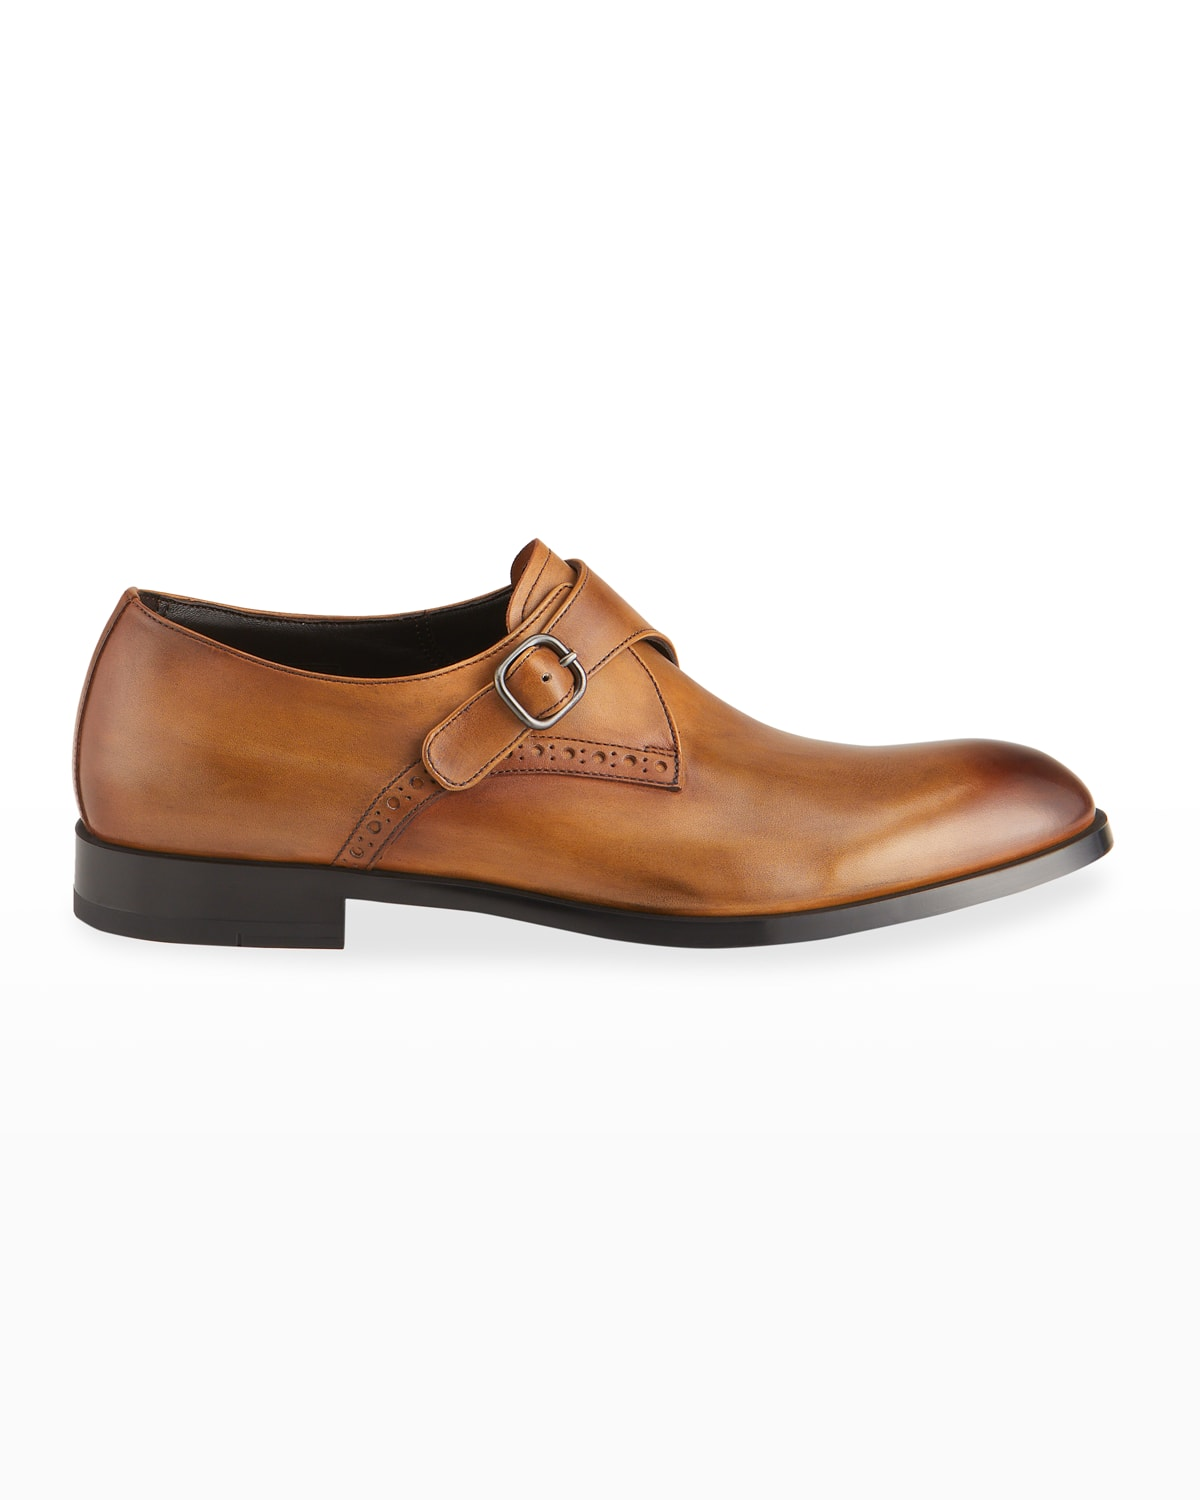 Men's Smooth Leather Single-Monk Slip-On Shoes